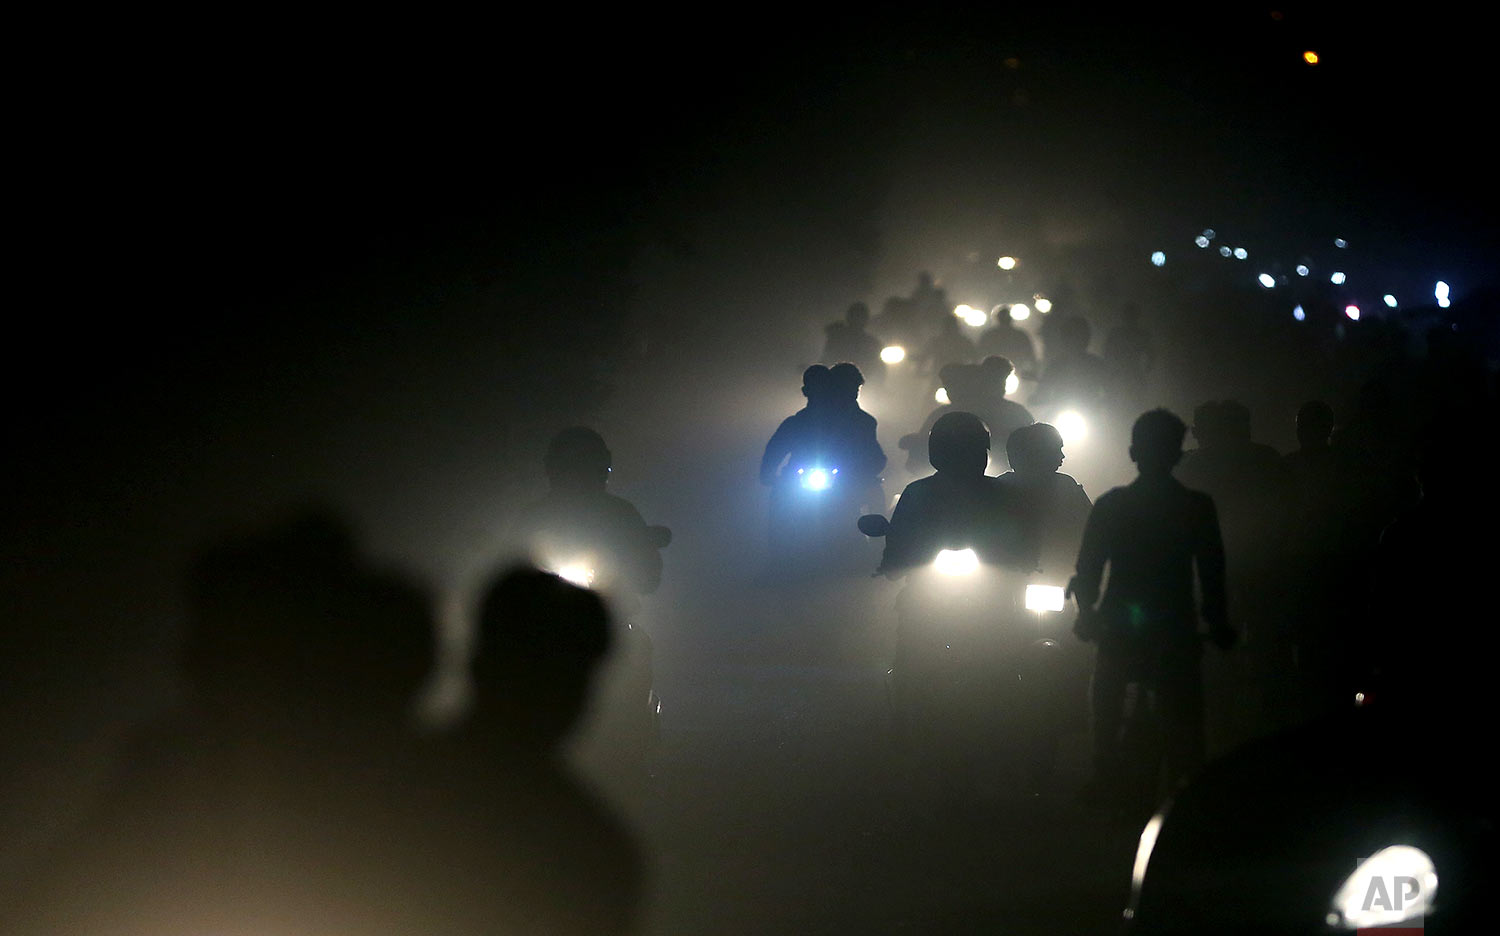 Indian motorists ride past a thick blanket of smog and dust on the outskirts of New Delhi, India, Friday, Nov. 10, 2017.  Thick smog has constricted India's capital this week, smudging landmarks from view and angering residents. Many are frustrated at the lack of meaningful action by authorities. The air was the worst it has been all year in New Delhi, with microscopic particles that can affect breathing and health spiking, at times, to 75 times the level considered safe by the World Health Organization. (AP Photo/Altaf Qadri)